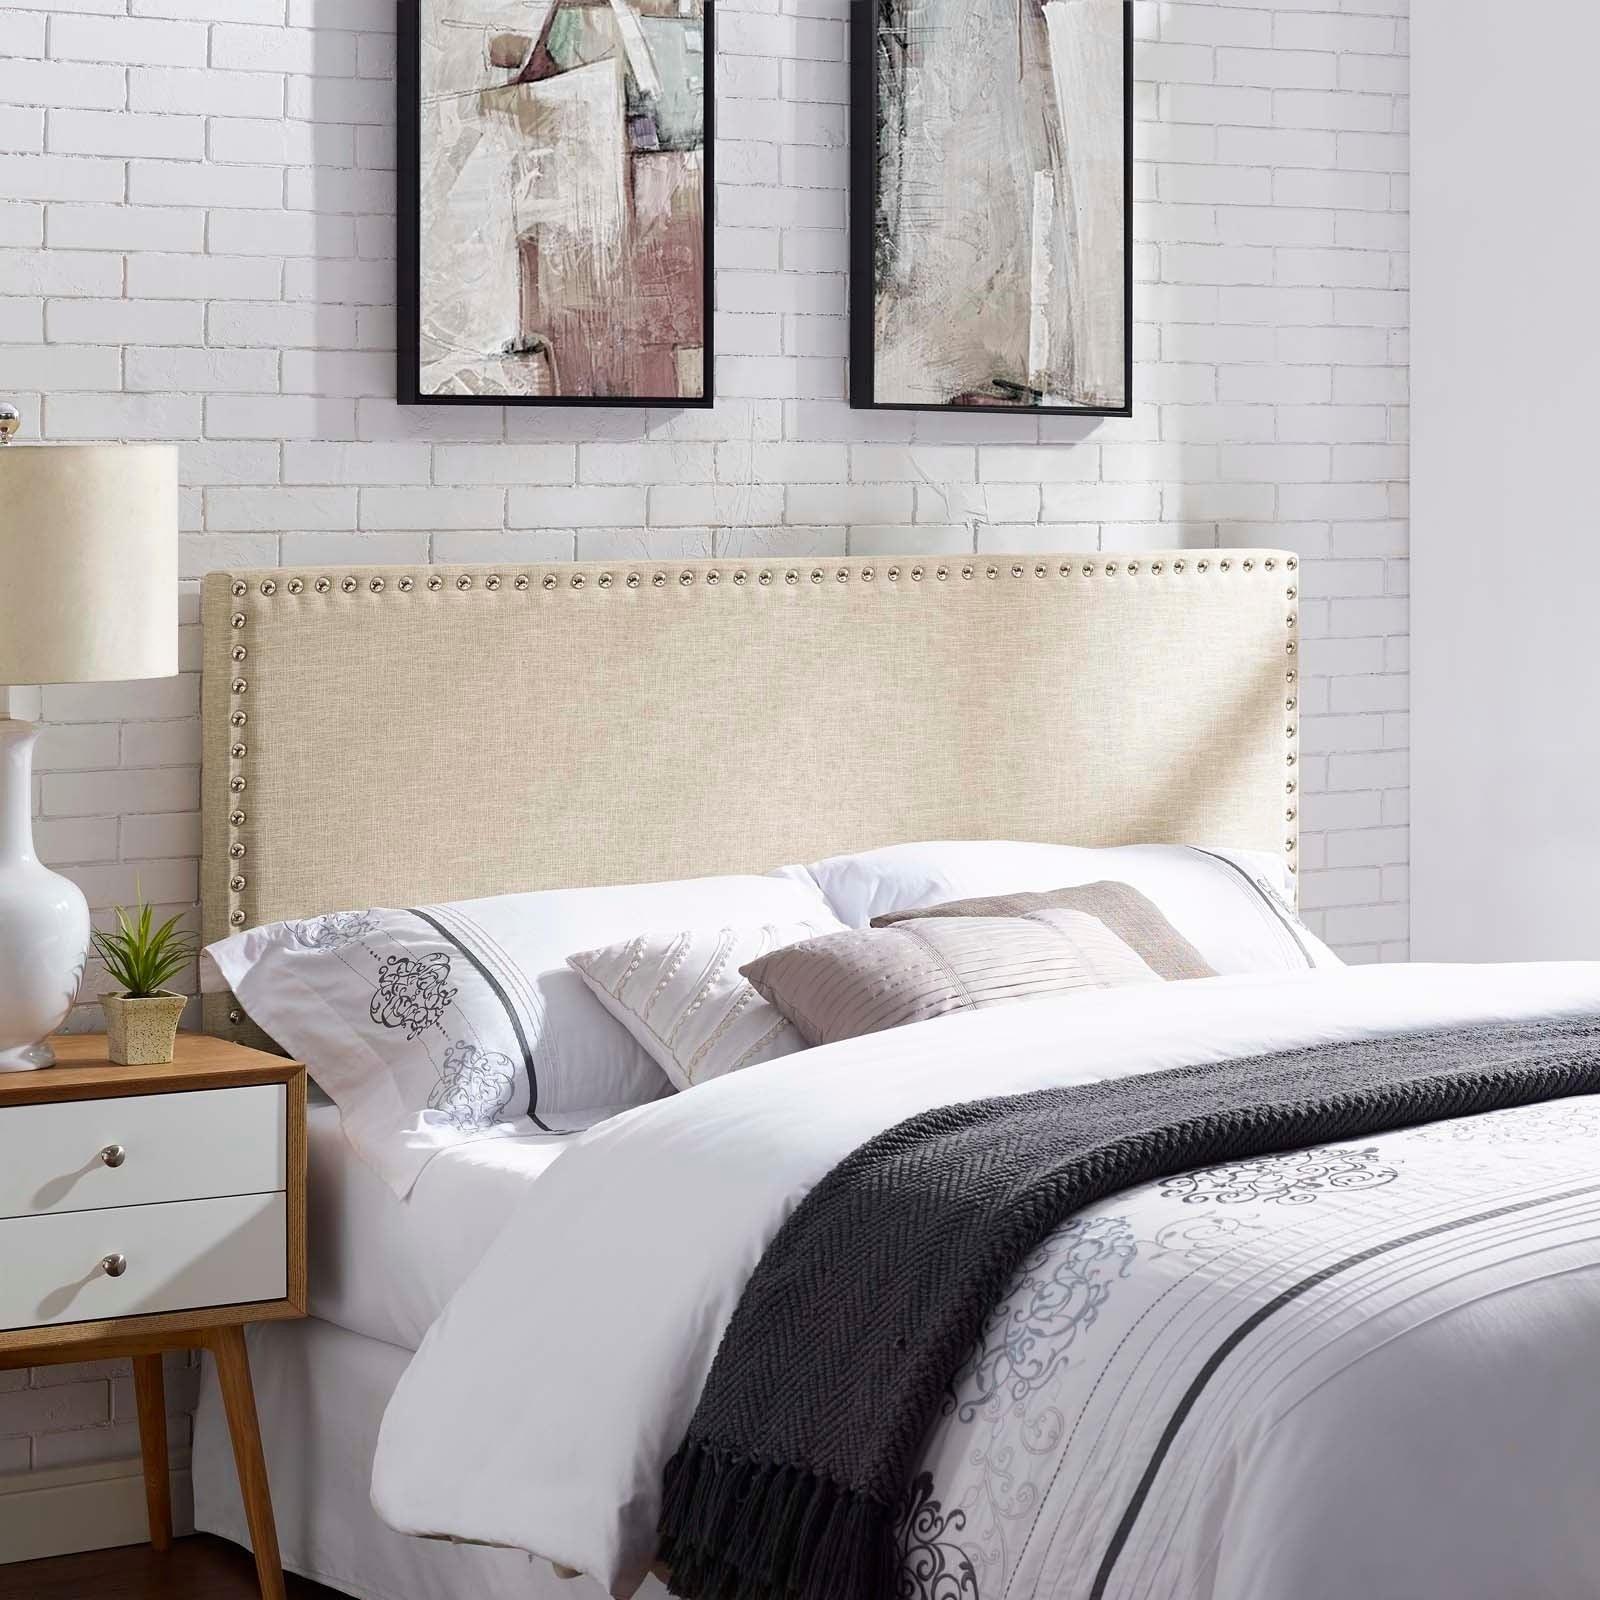 Shop phoebe queen upholstered fabric headboard free shipping today overstock com 19427925